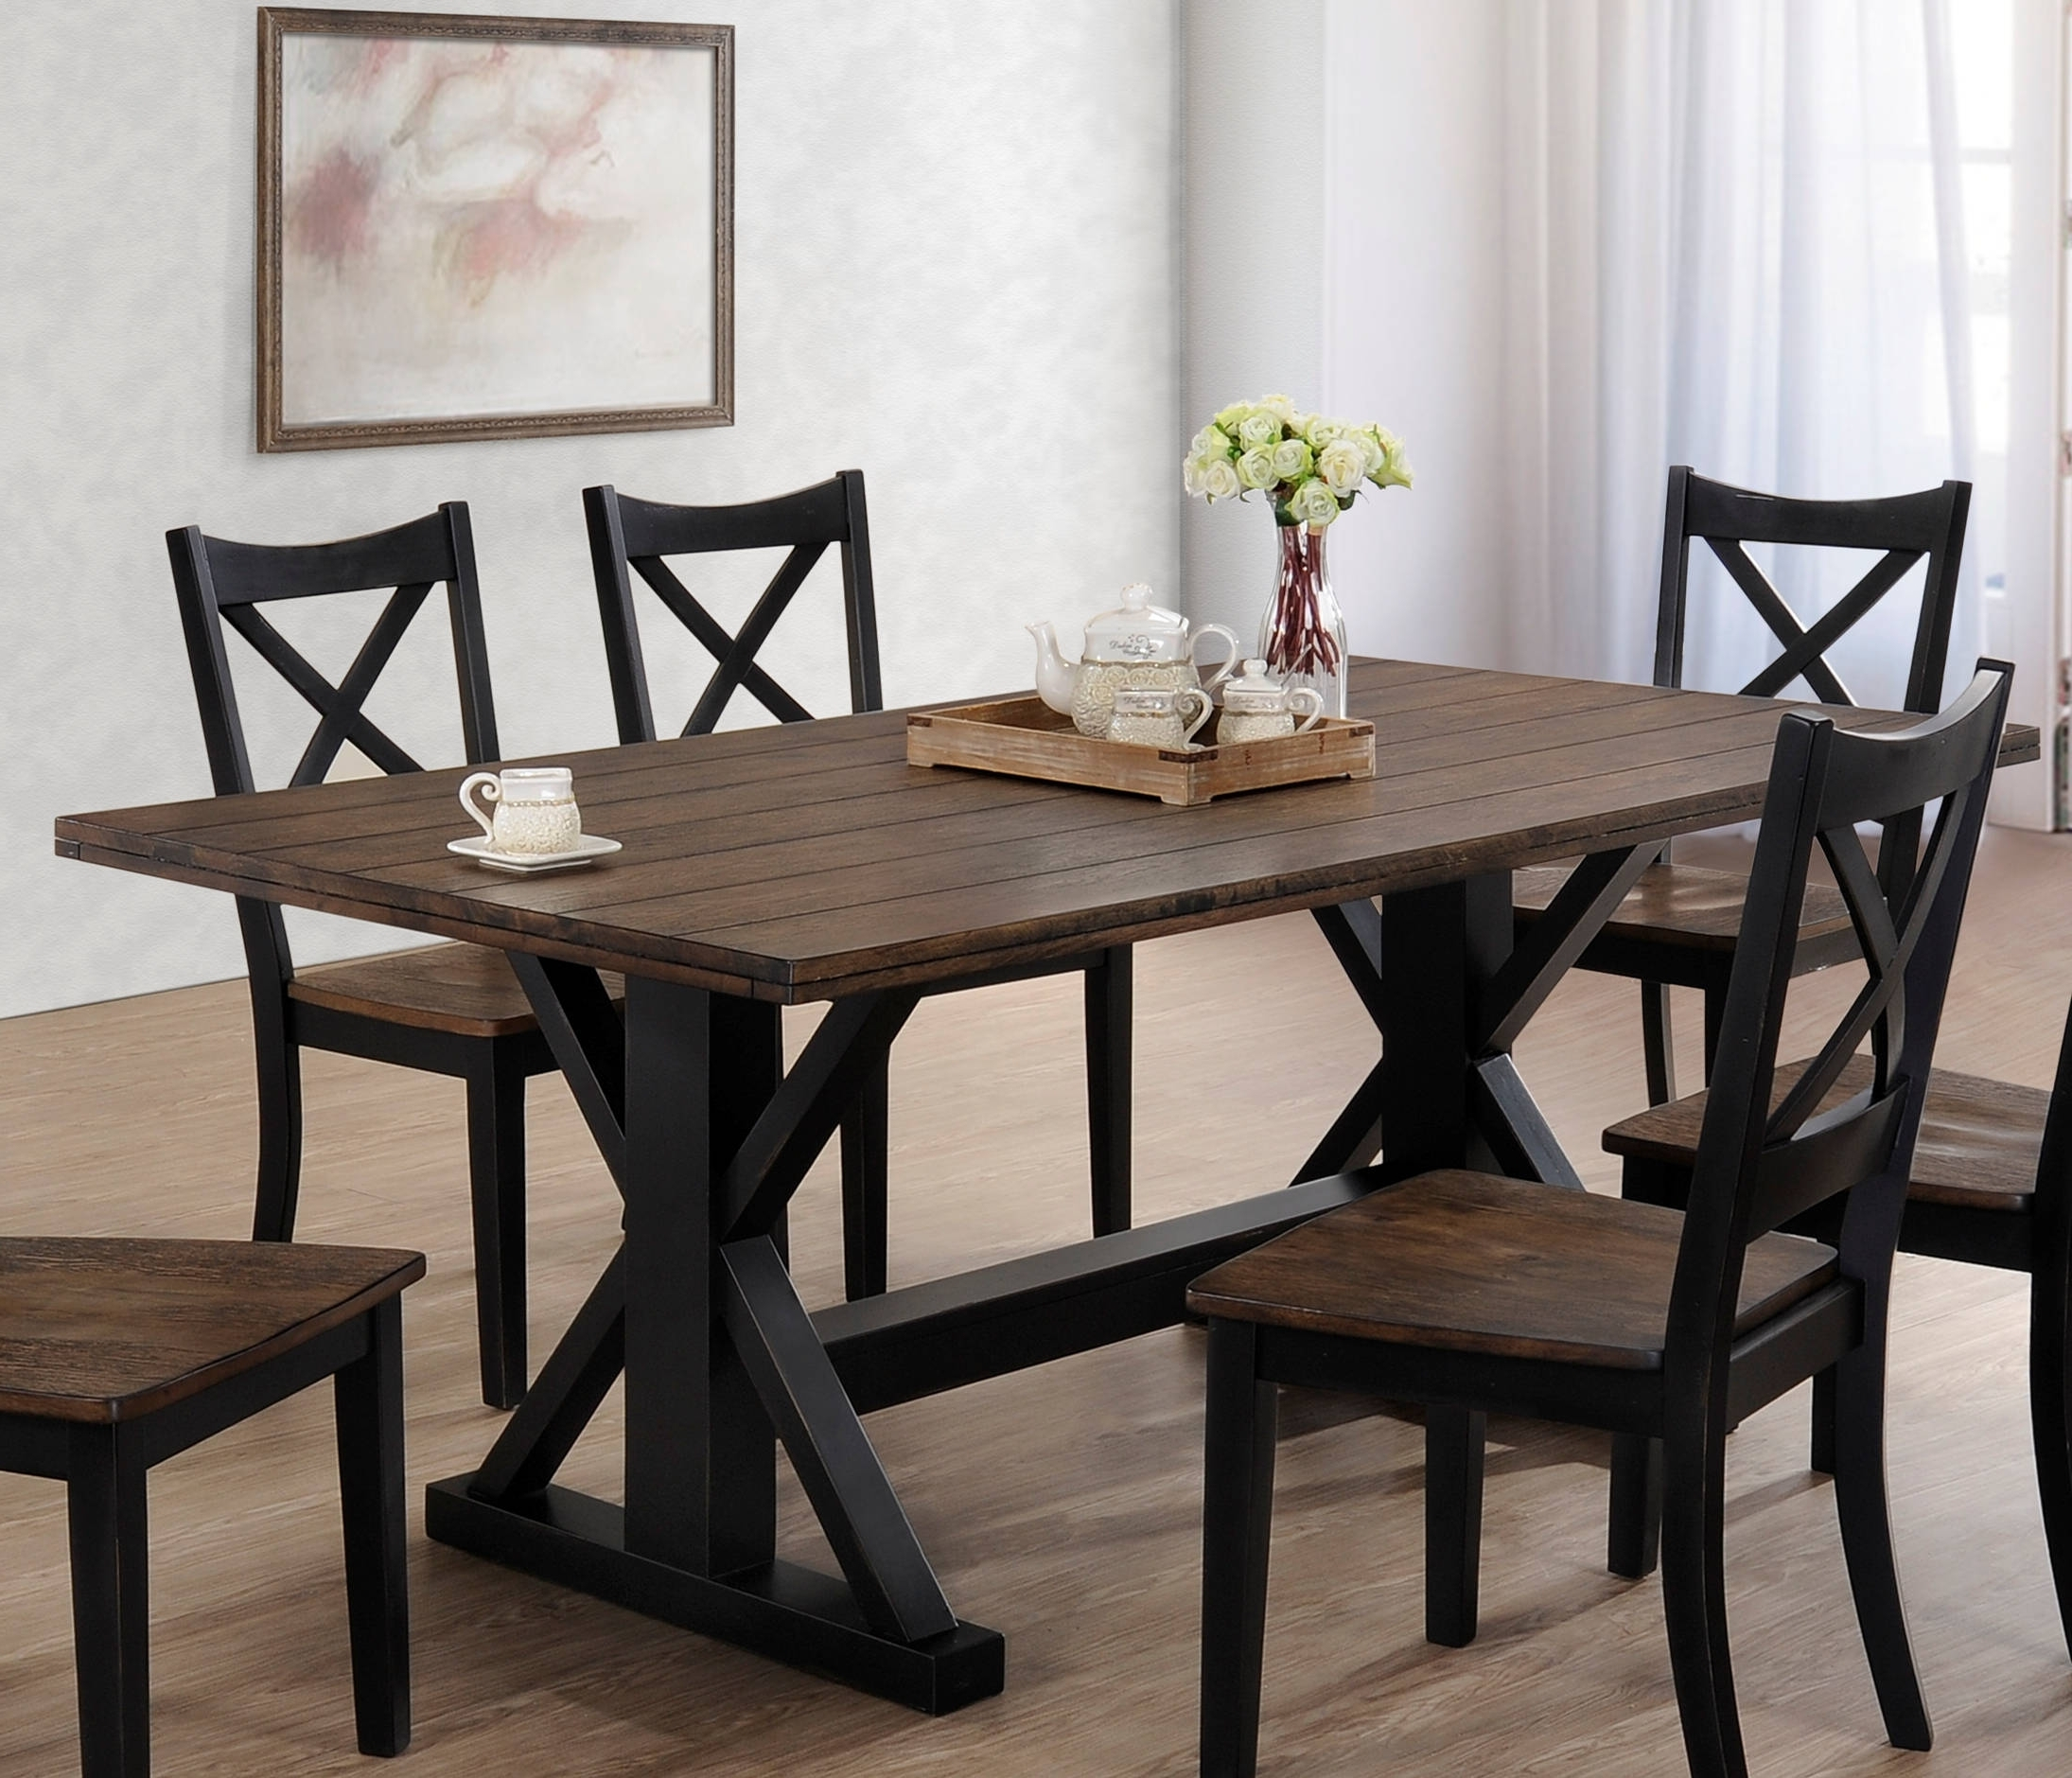 The Classy Home Regarding Rustic Oak Dining Tables (View 25 of 25)